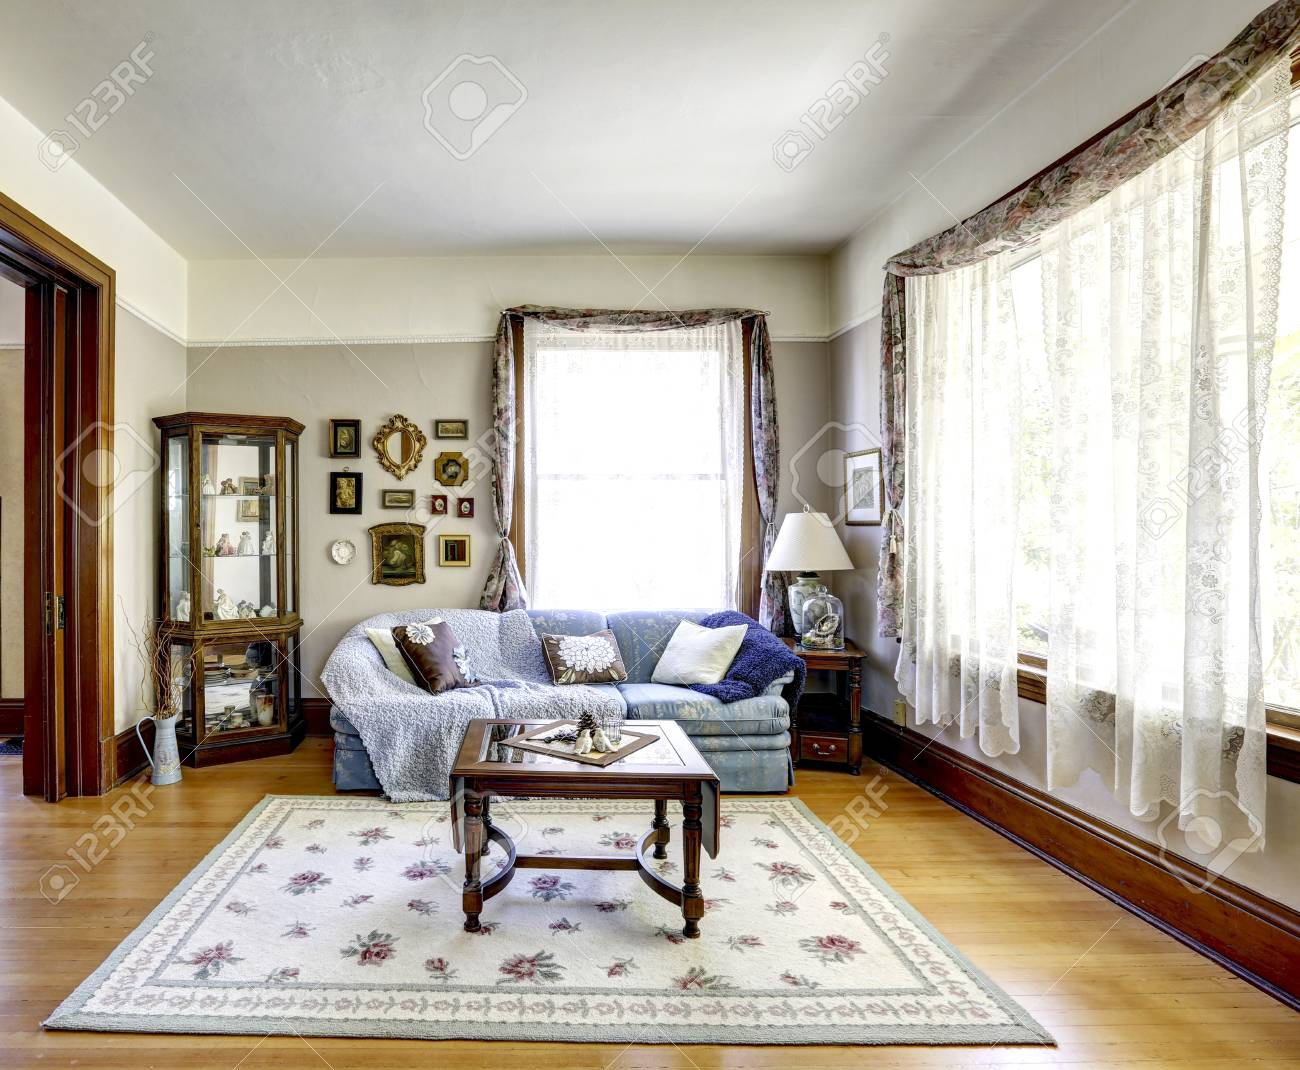 Salotto Old America.Bright Living Room Interior With Antique Furniture In Old American